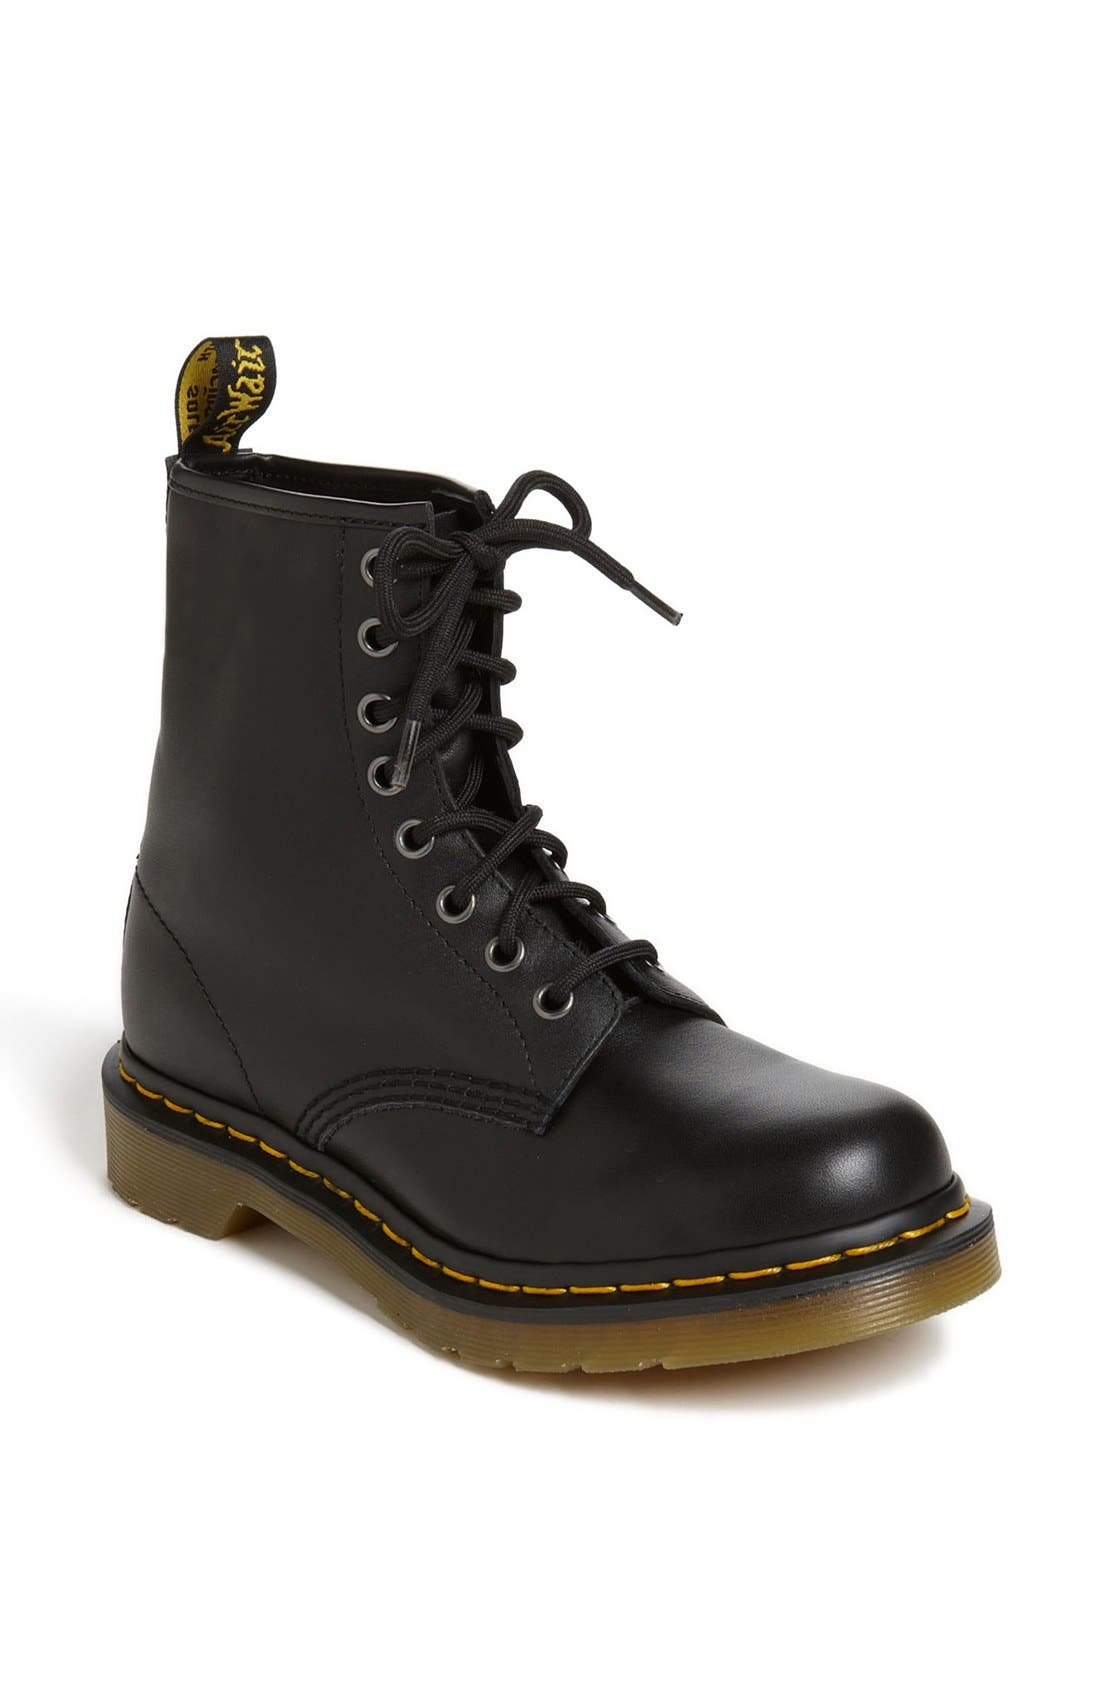 1460 W Boot,                         Main,                         color, Black